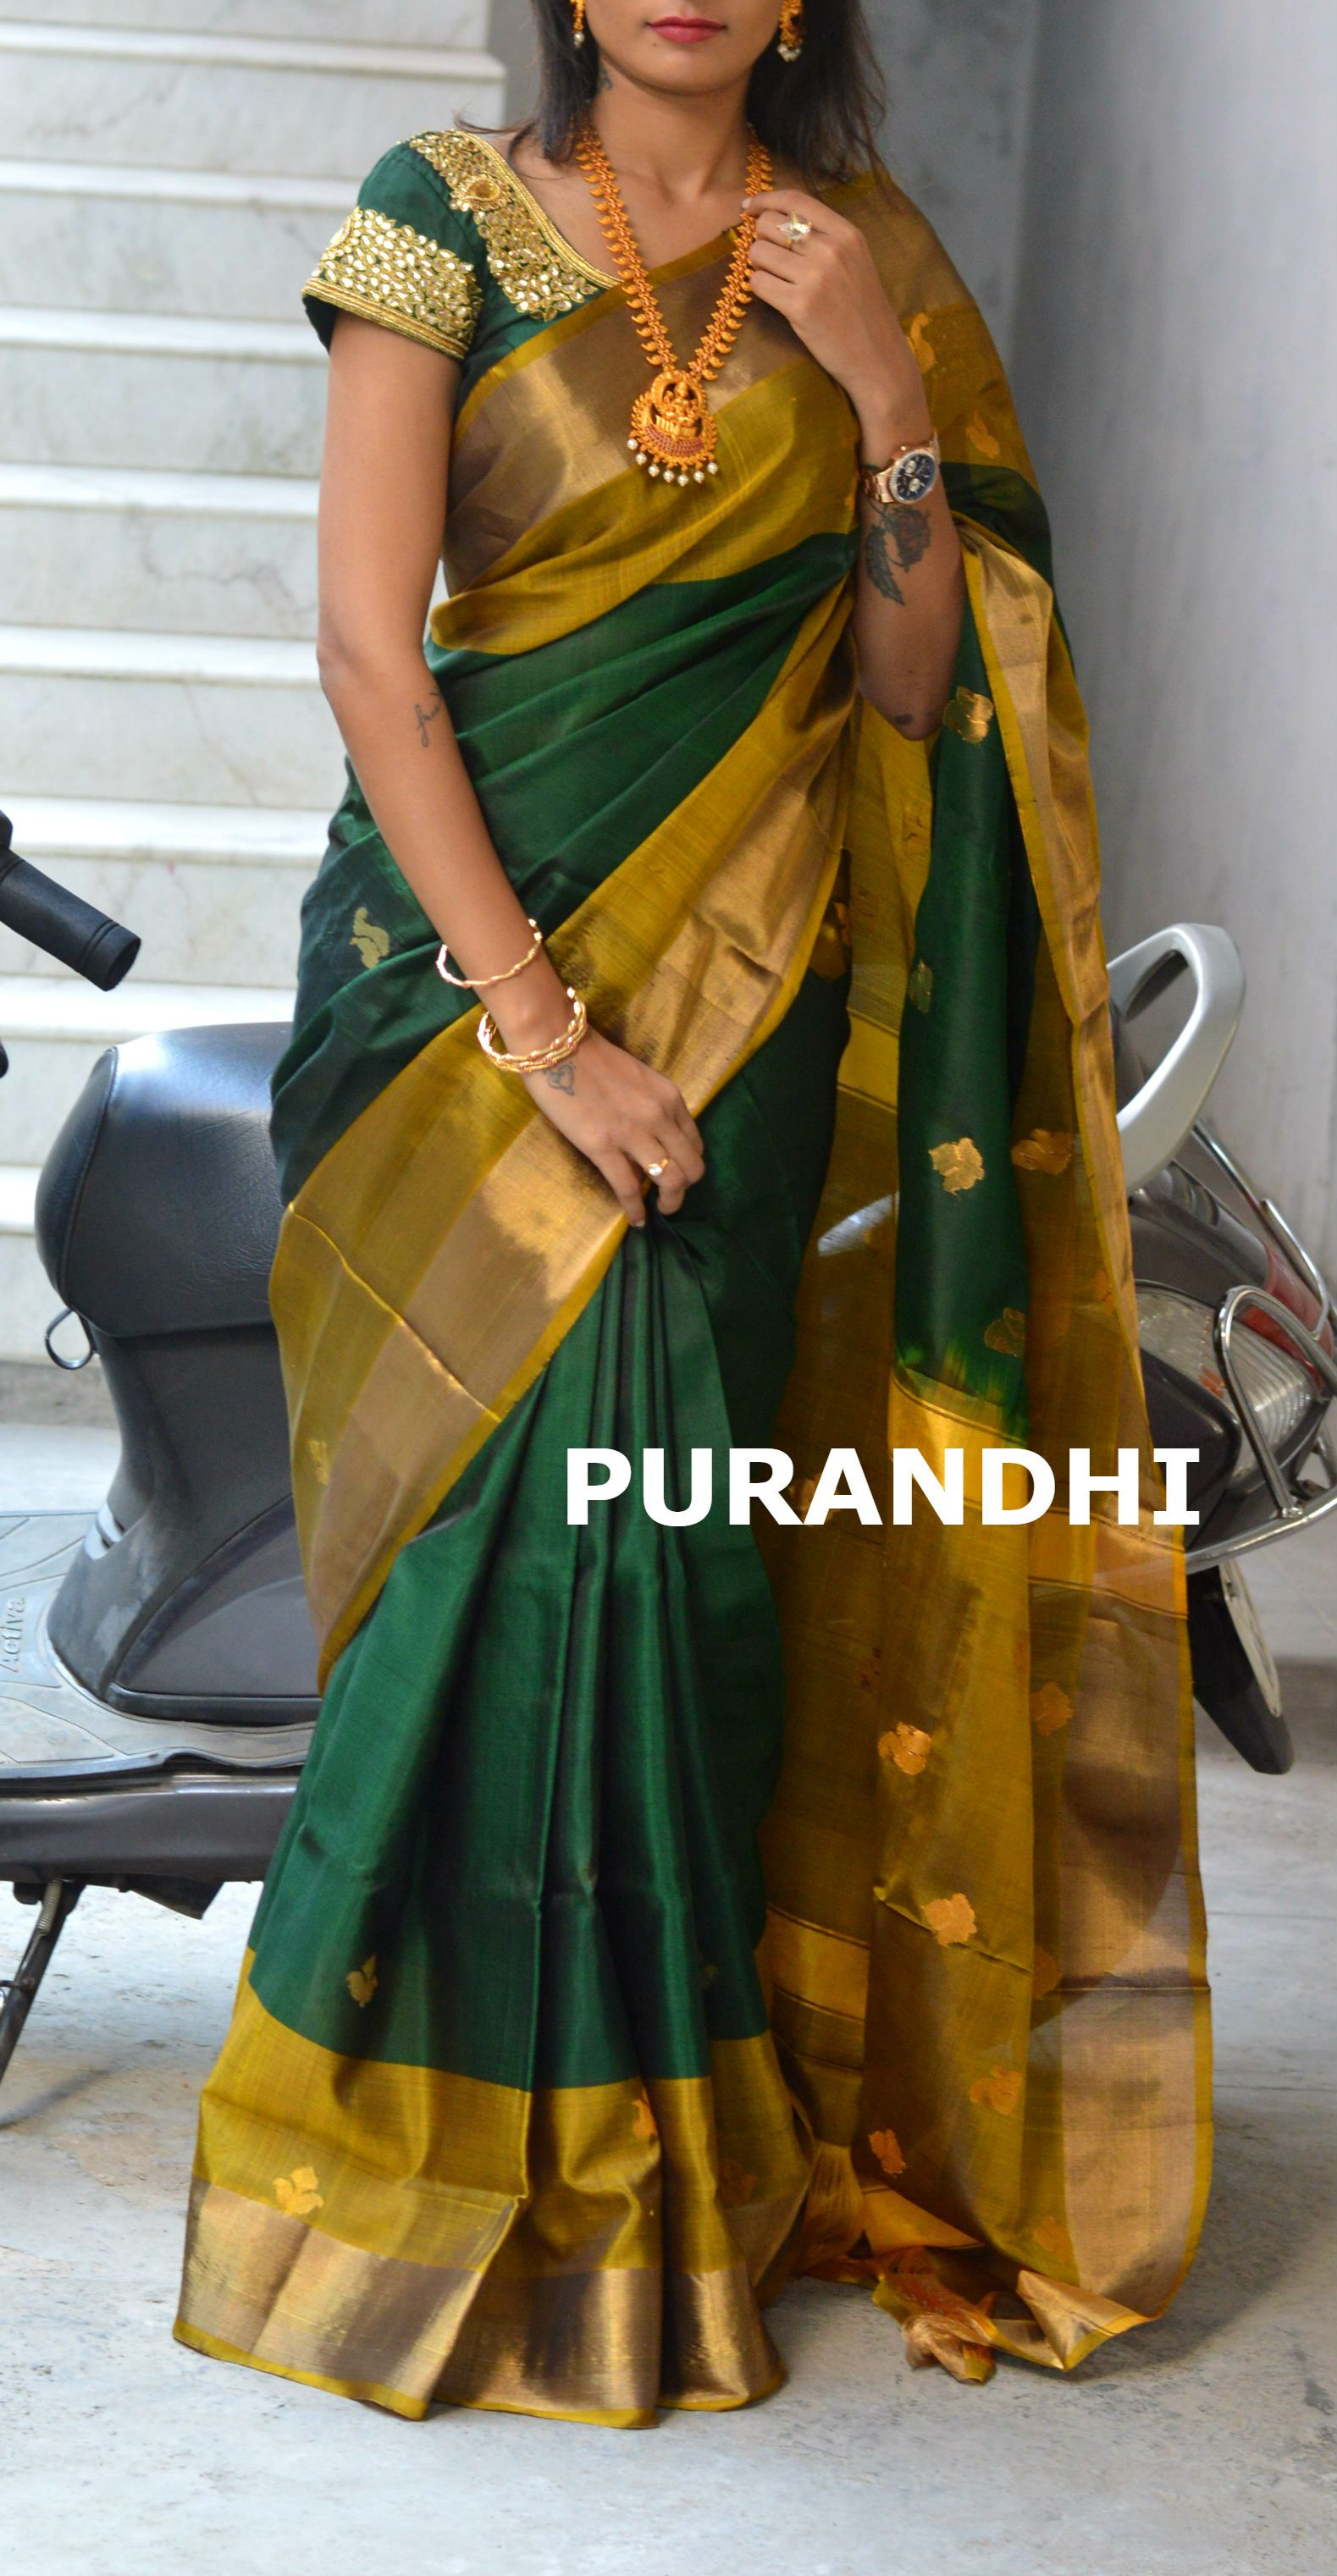 6516a993659852 Pure Uppada Pattu Checks Saree comes with Plain Red Blouse. Bottle Green uppada  pattu saree